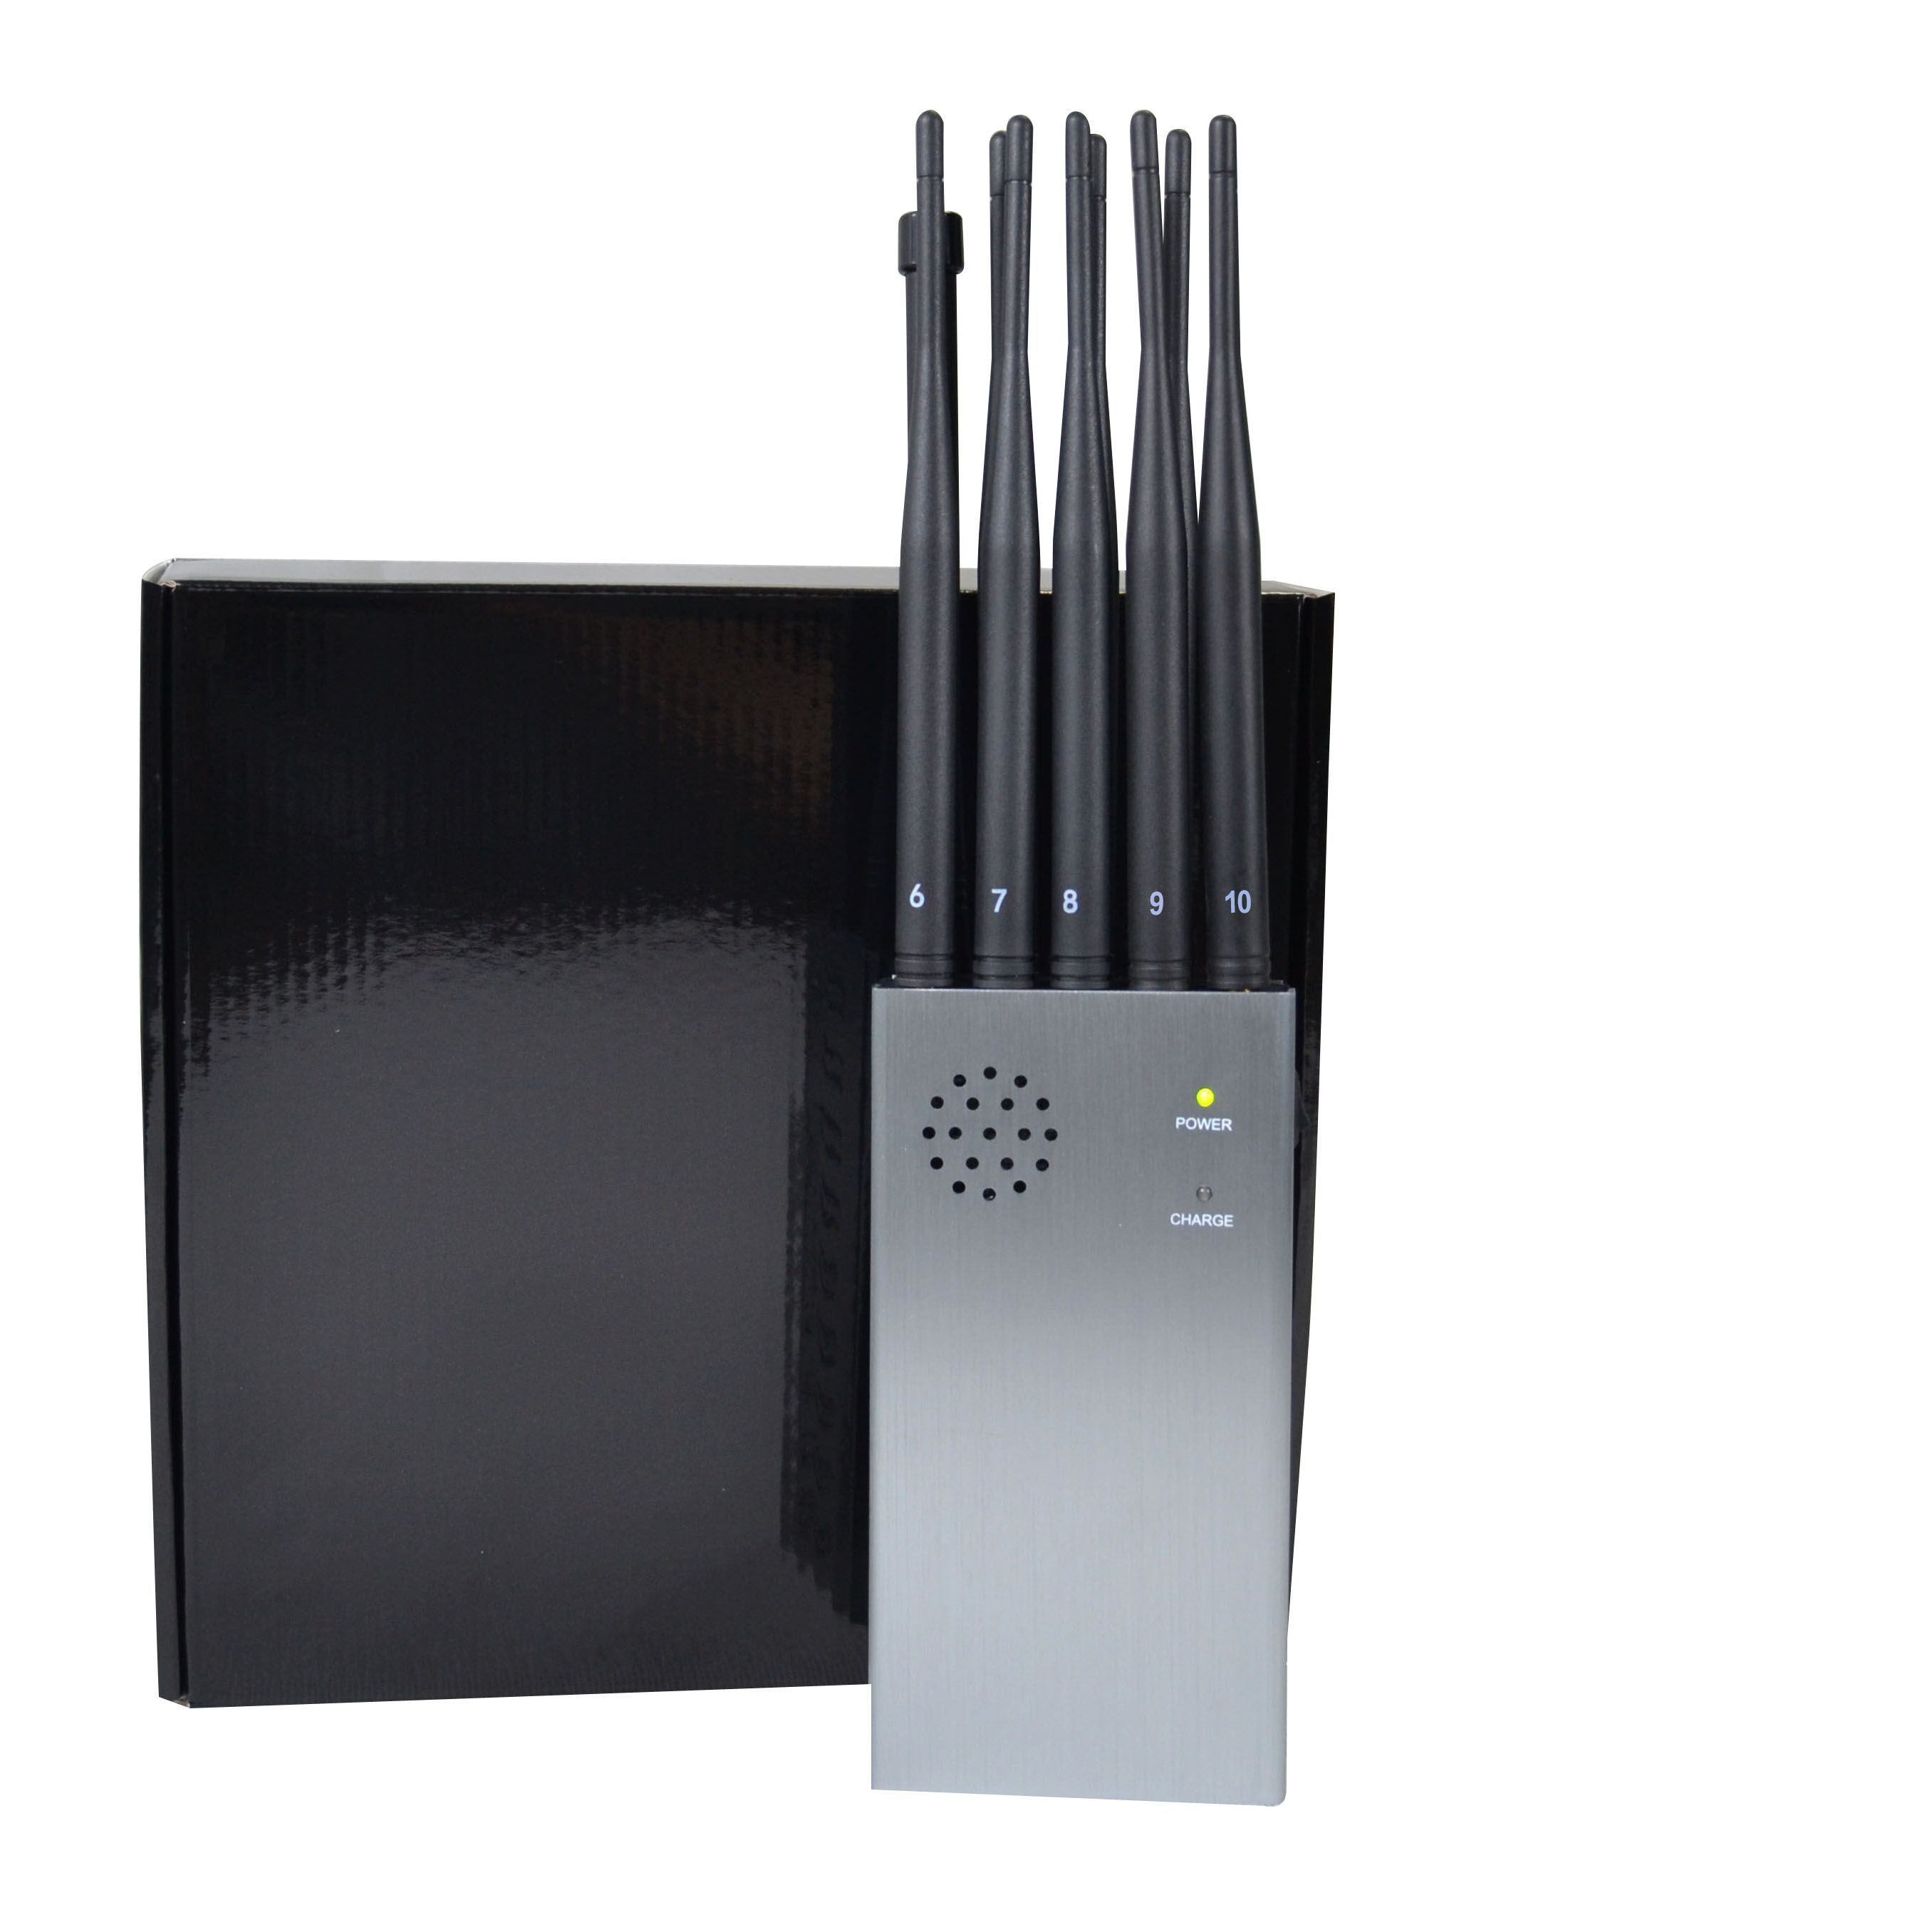 signal jamming project nexus - China King Jammer with Portable 10 Antennas Including 2g 3G 5g 4G WiFi, GPS Remote Control Lojack Signals - China 8000mA Battery Jammer, Large Volume Power Signal Blocker